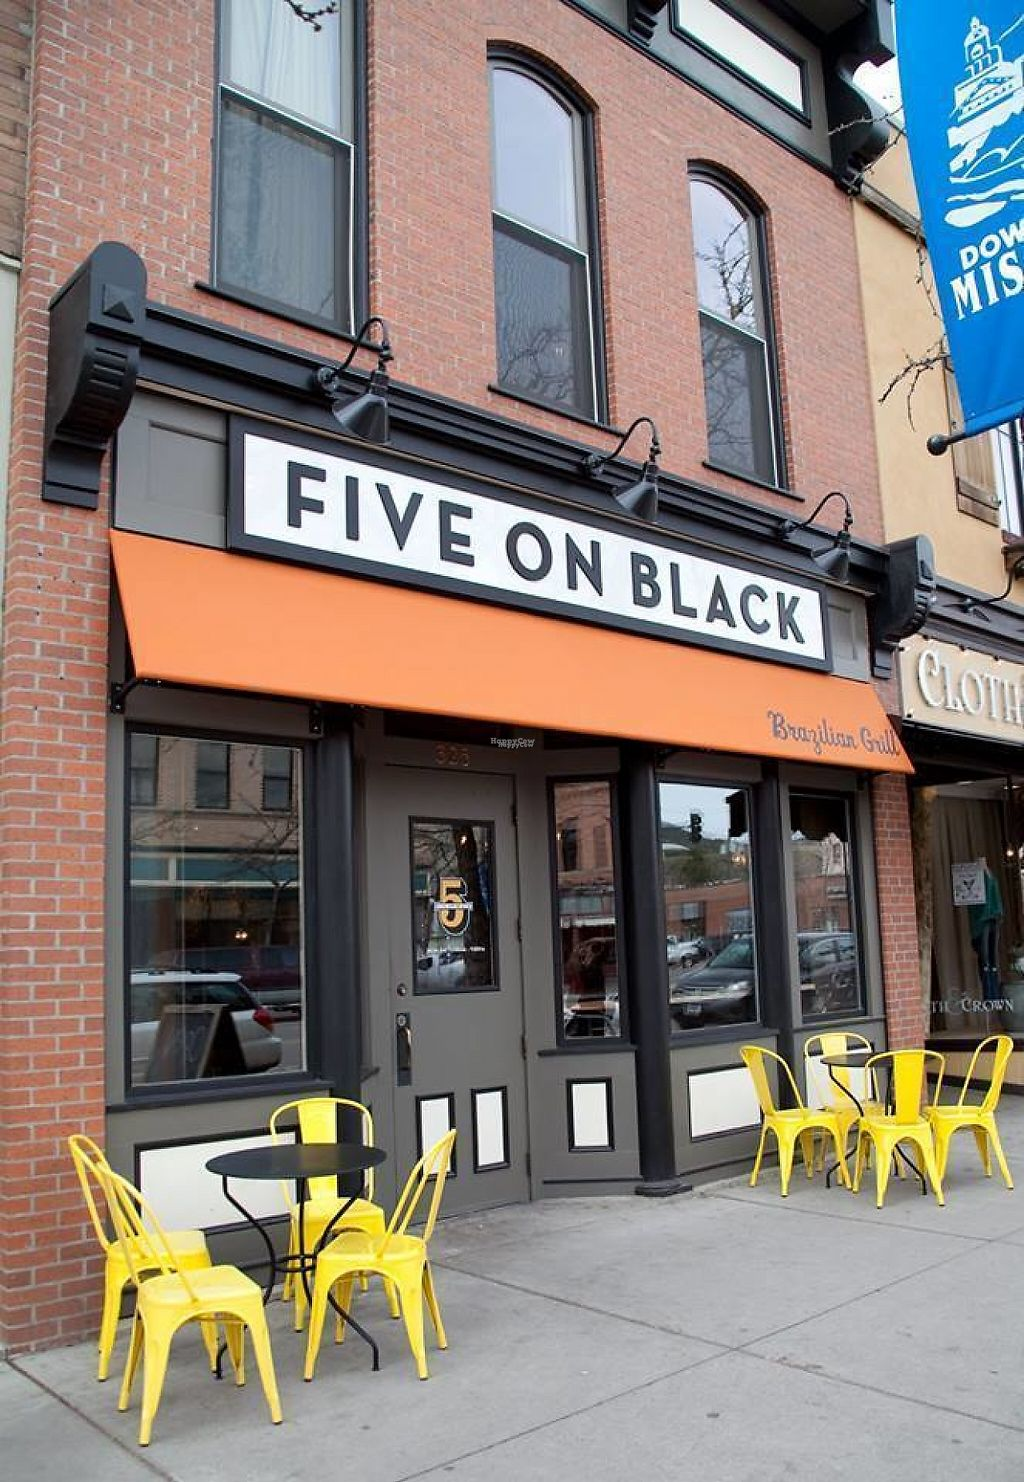 """Photo of Five on Black - South  by <a href=""""/members/profile/community"""">community</a> <br/>Five on Black <br/> February 23, 2017  - <a href='/contact/abuse/image/68678/229561'>Report</a>"""